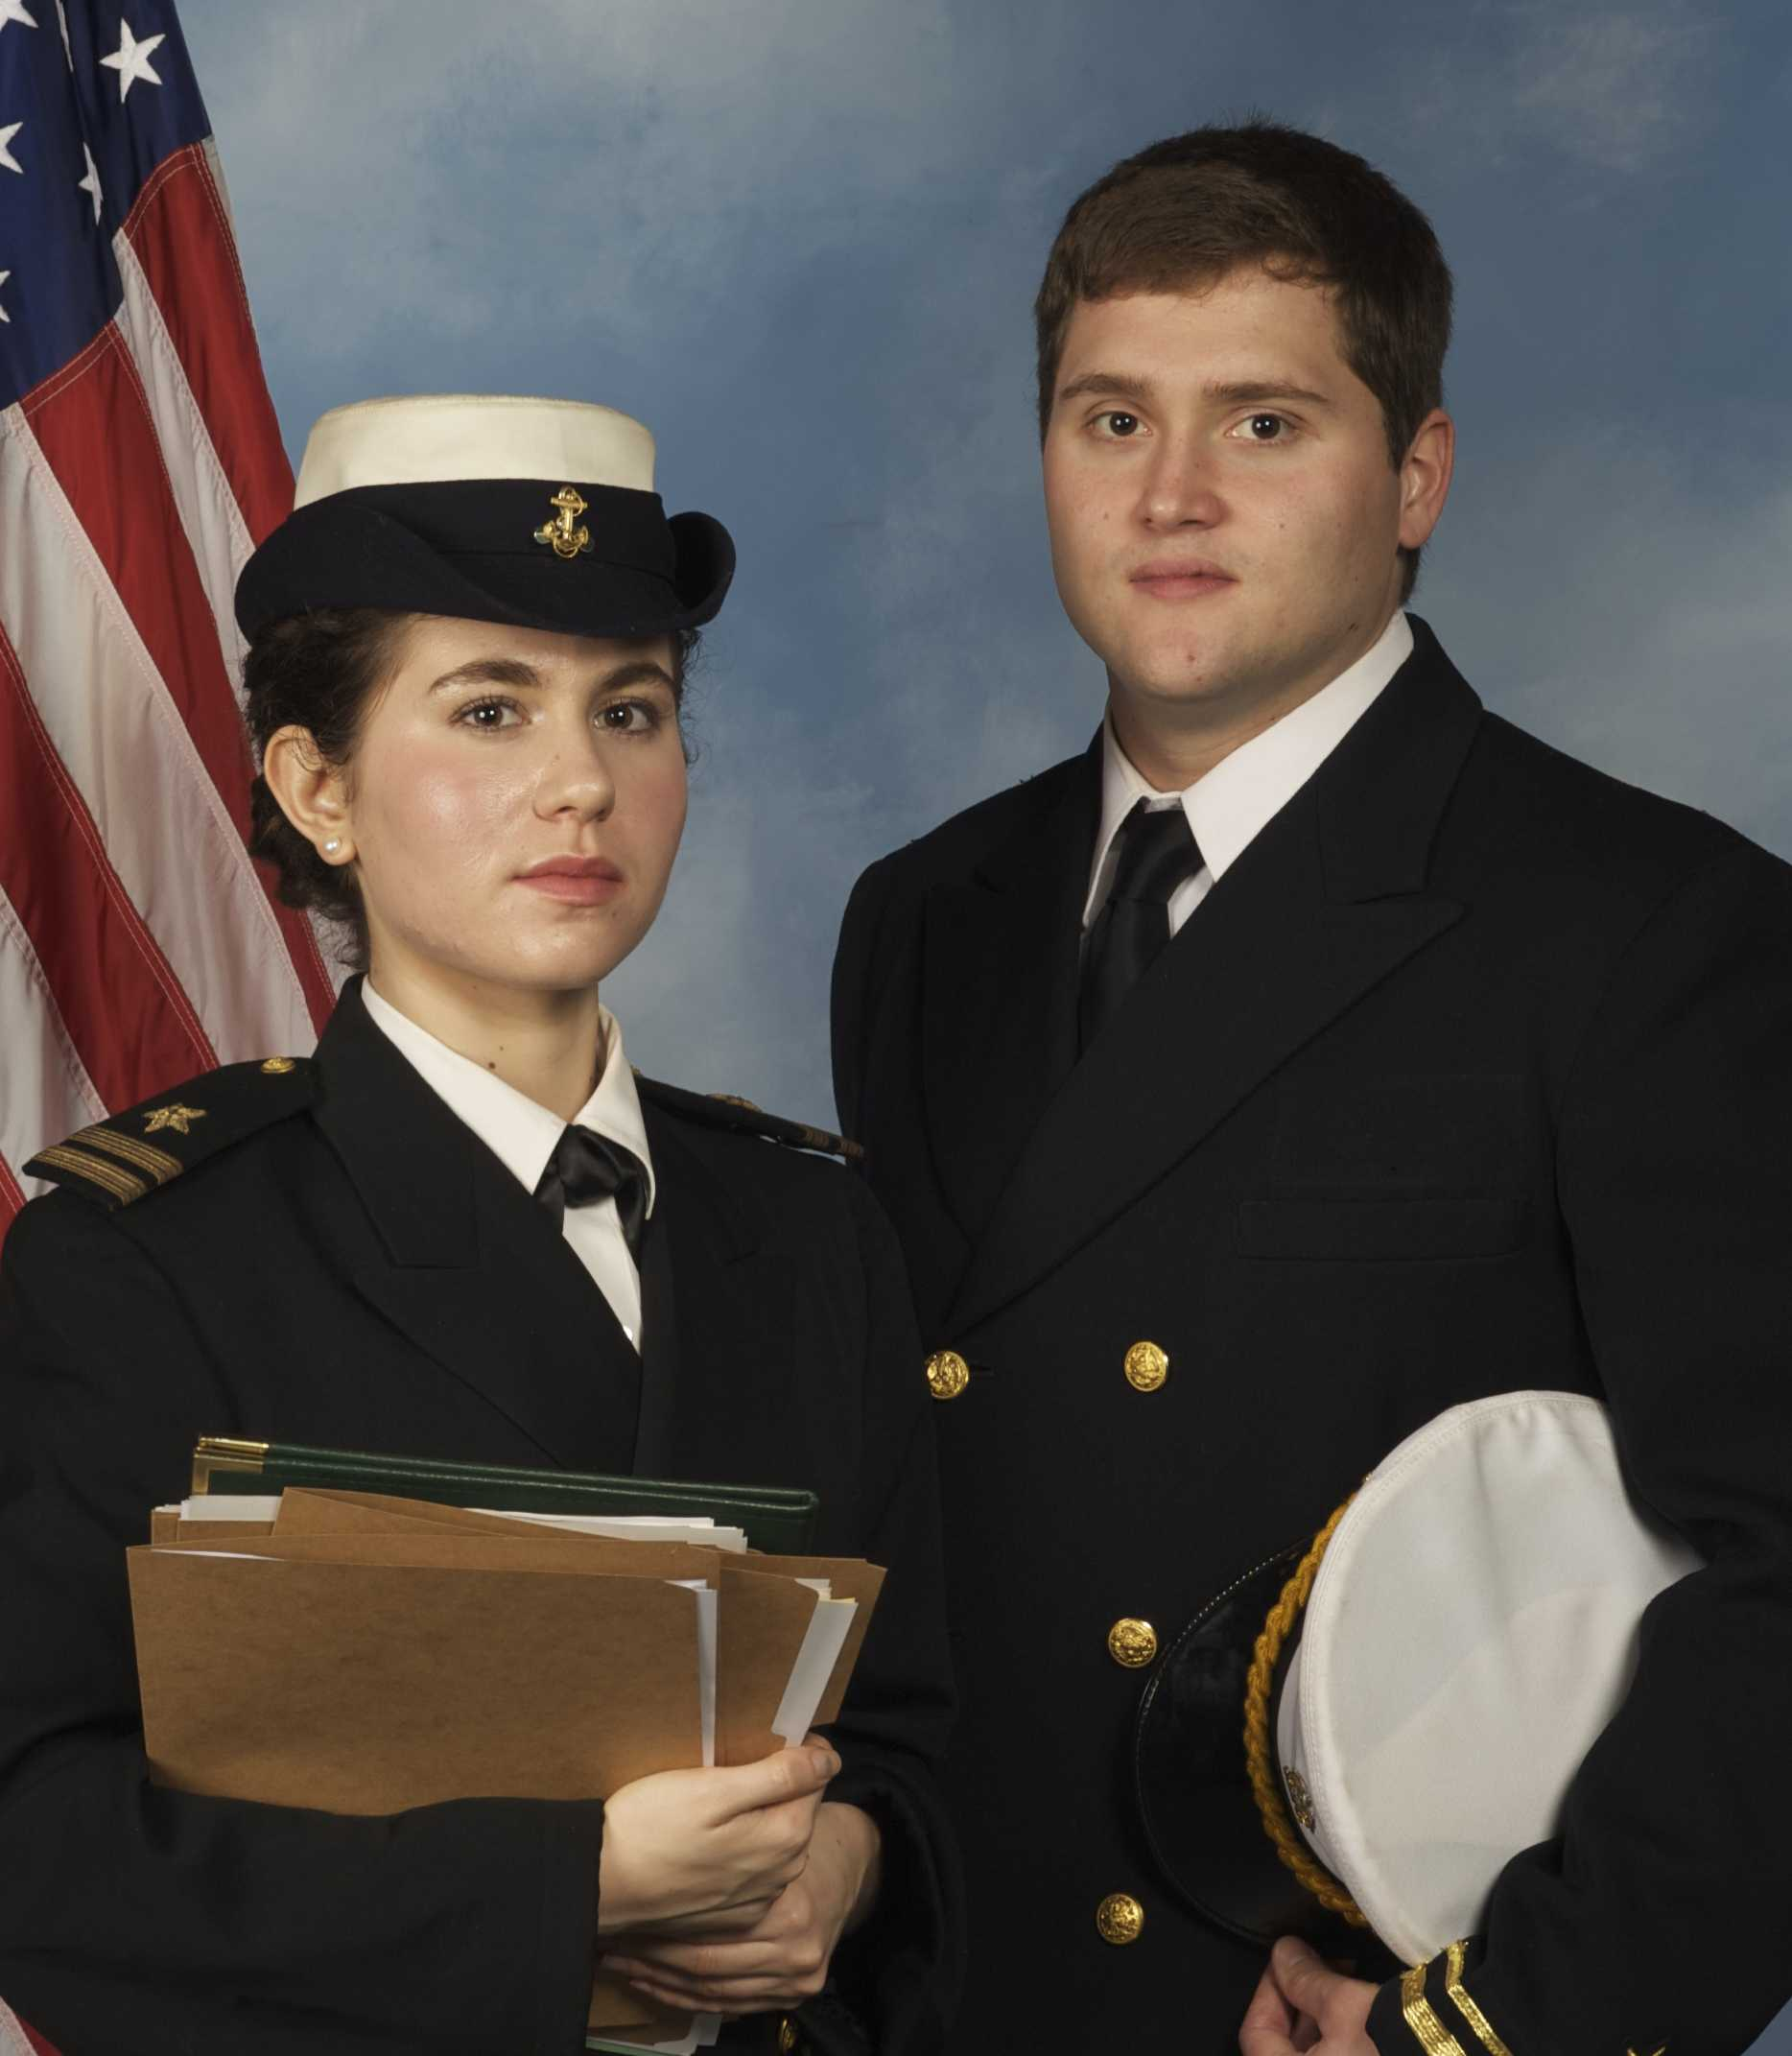 Rosella Bearden and Justin Brown both deliver excellent performances as the two protagonists of Aaron Sorkin's A Few Good Men, directed here at SRJC by Laura Downing-Lee. The show runs March 8-17.